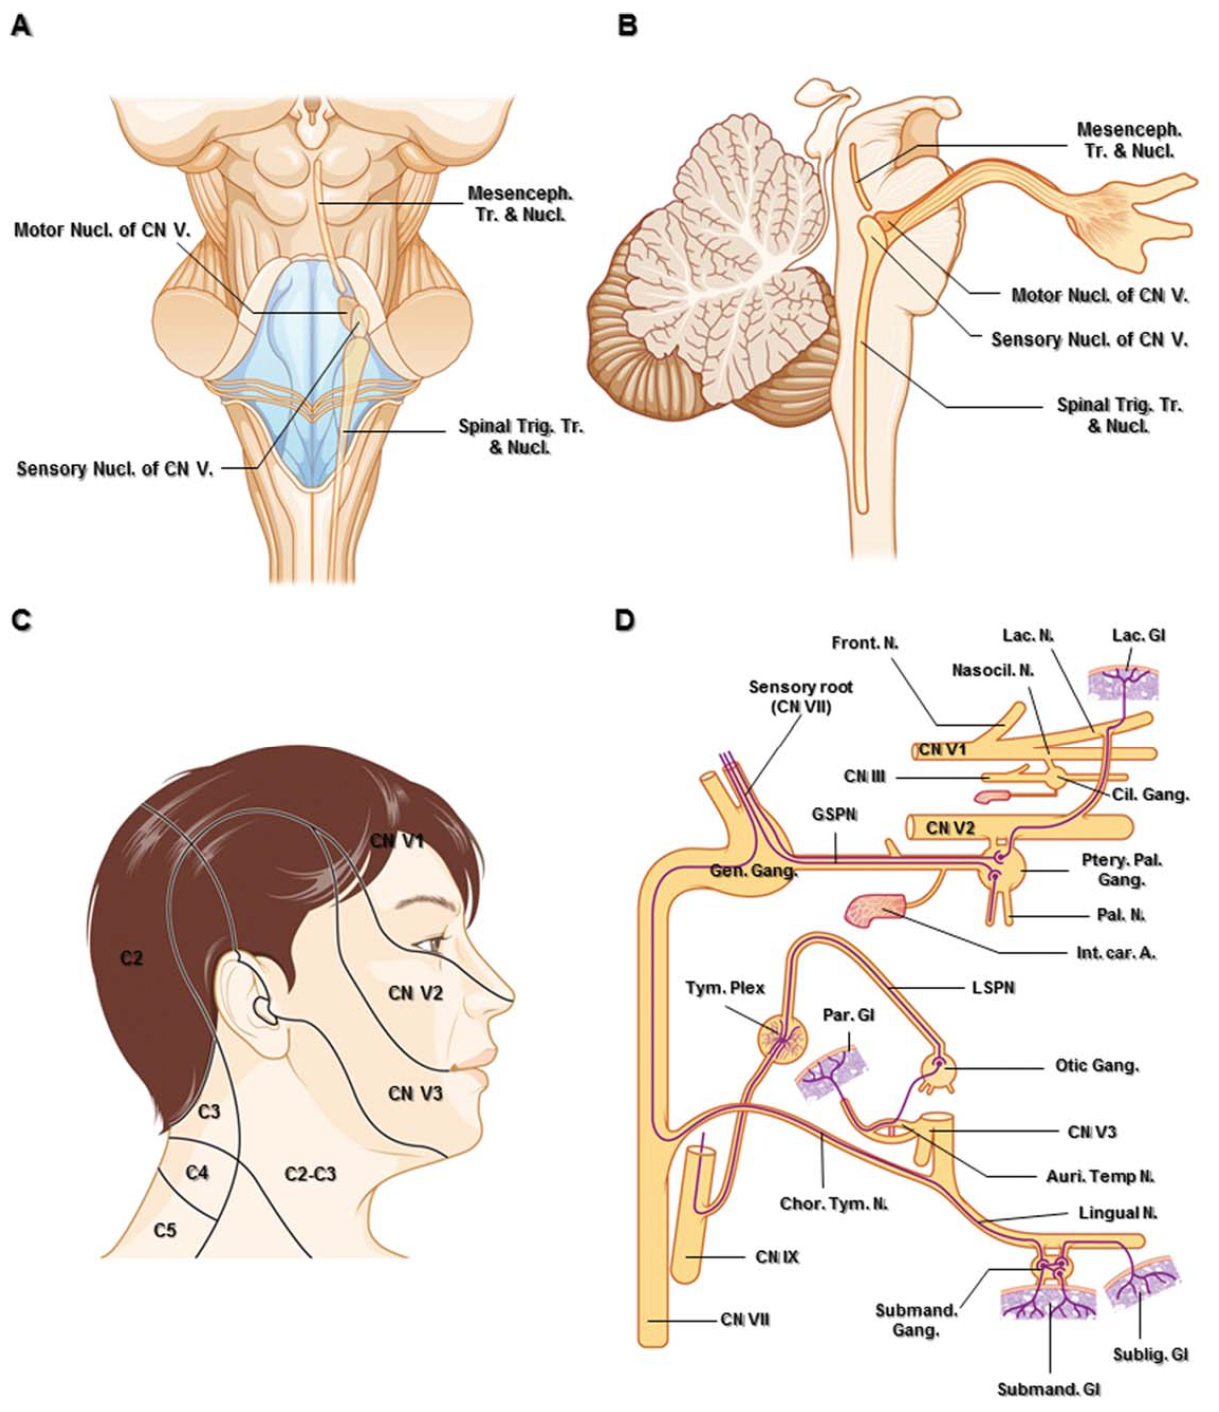 Figure 1. A. Posterior schematic anatomic view and superimposed diagram of the brain stem showing nuclei of the trigeminal nerve. The motor nucleus is situated medial to the sensory nucleus of the trigeminal nerve. B. Sagittal schematic view passing the right trigeminal nuclei. C. The cutaneous innervation of the head and upper neck. There is little overlap between the three dermatomes of the trigeminal nerve. D. Parasympathetic connections of the pterygopalatine, otic, and submandibular ganglia. The parasympathetic fibers are shown as purple lines. Abbreviations: Auri. Temp. N., auriculotemporal nerve; C., cervical; Car., carotid; Chor.Tym. N., chorda tympani nerve; Cil., ciliary; CN., cranial nerve; Front., frontal; Gang., ganglion; Gen., geniculate; Gl., gland; GSPN., greater superficial petrosal nerve; Int., internal; Lac., lacrimal; Mesenceph., mesencephalic; N. nerve; Nasocil., nasociliary; LSPN., lesser superficial petrosal nerve; Nucl., nucleus; Par., parotid; Ptery. Pal., pterygopalatine; Subling., sublingual; Submand., submandibular; Tr., tract; Trig., trigeminal; Tym. Plex., tympanic plexus. (Images courtesy of AL Rhoton, Jr.)